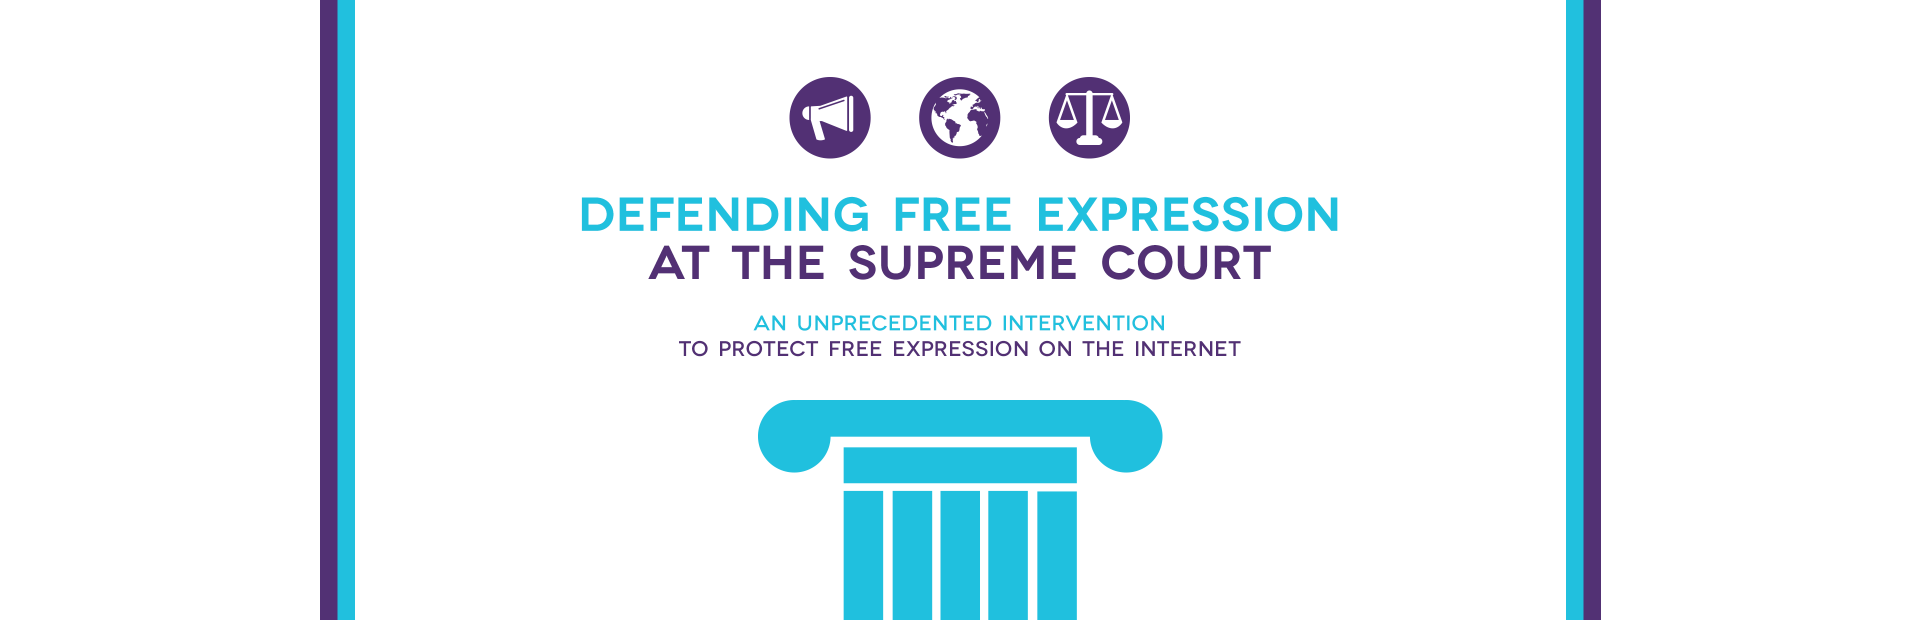 Defending free expression at the Supreme Court